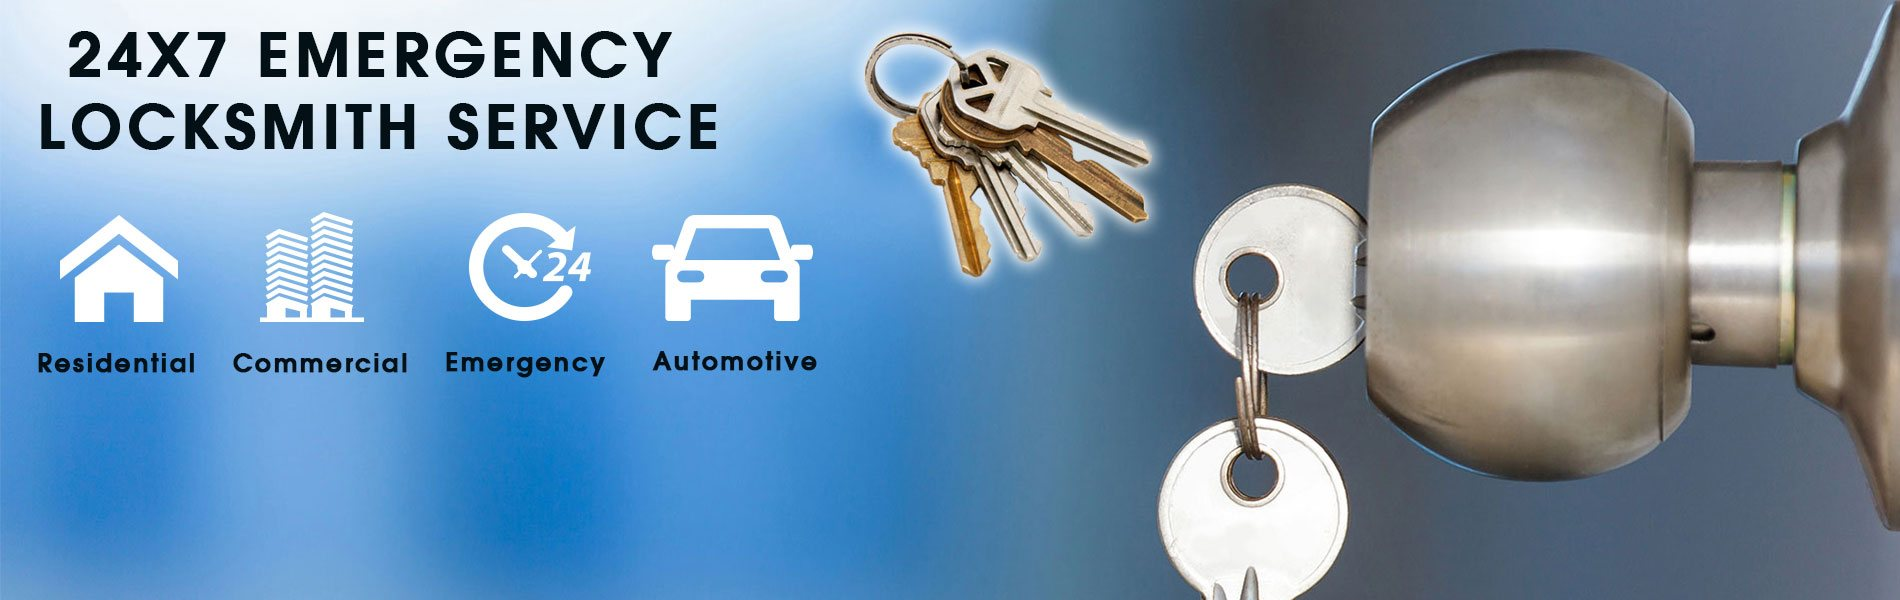 Golden Locksmith Services Phoenix, AZ 480-612-9236